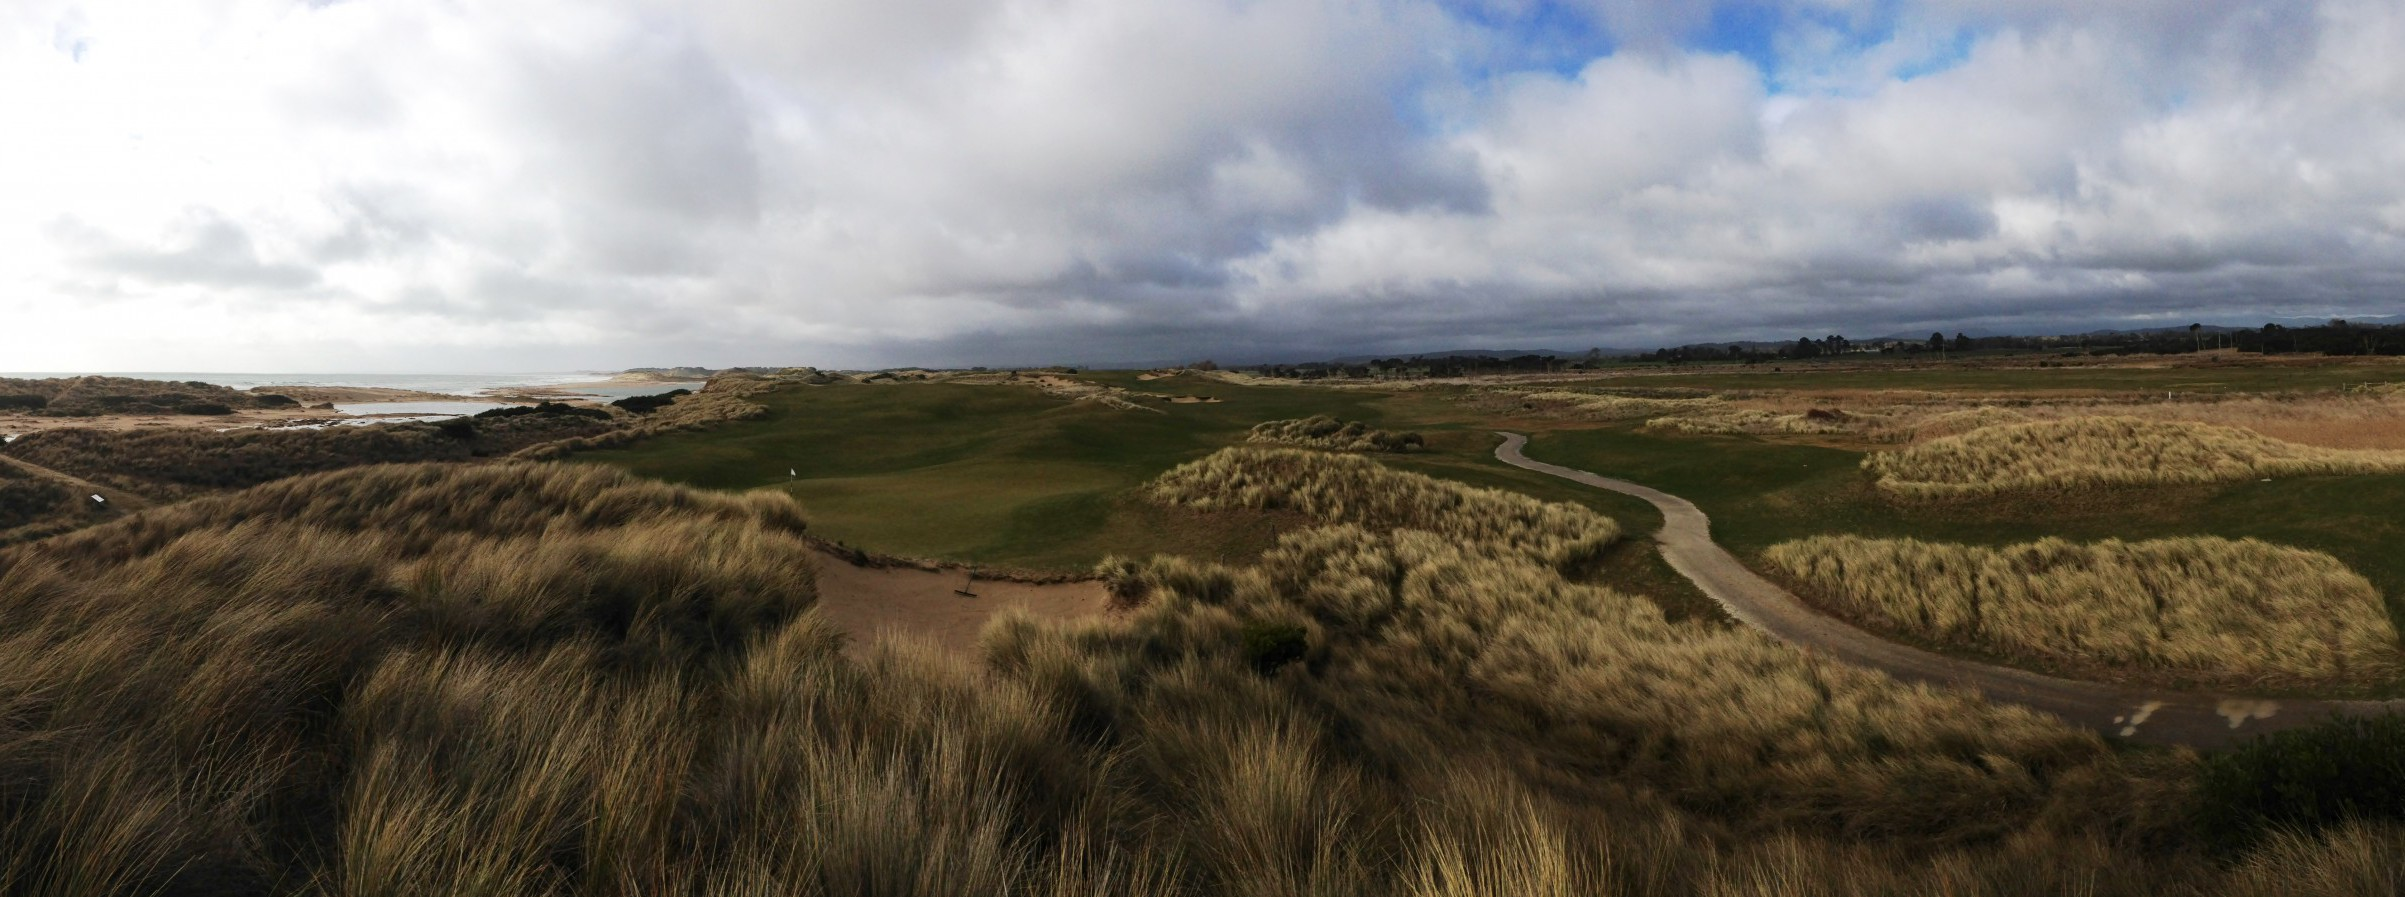 Surprise Hit Around Barnbougle Dunes